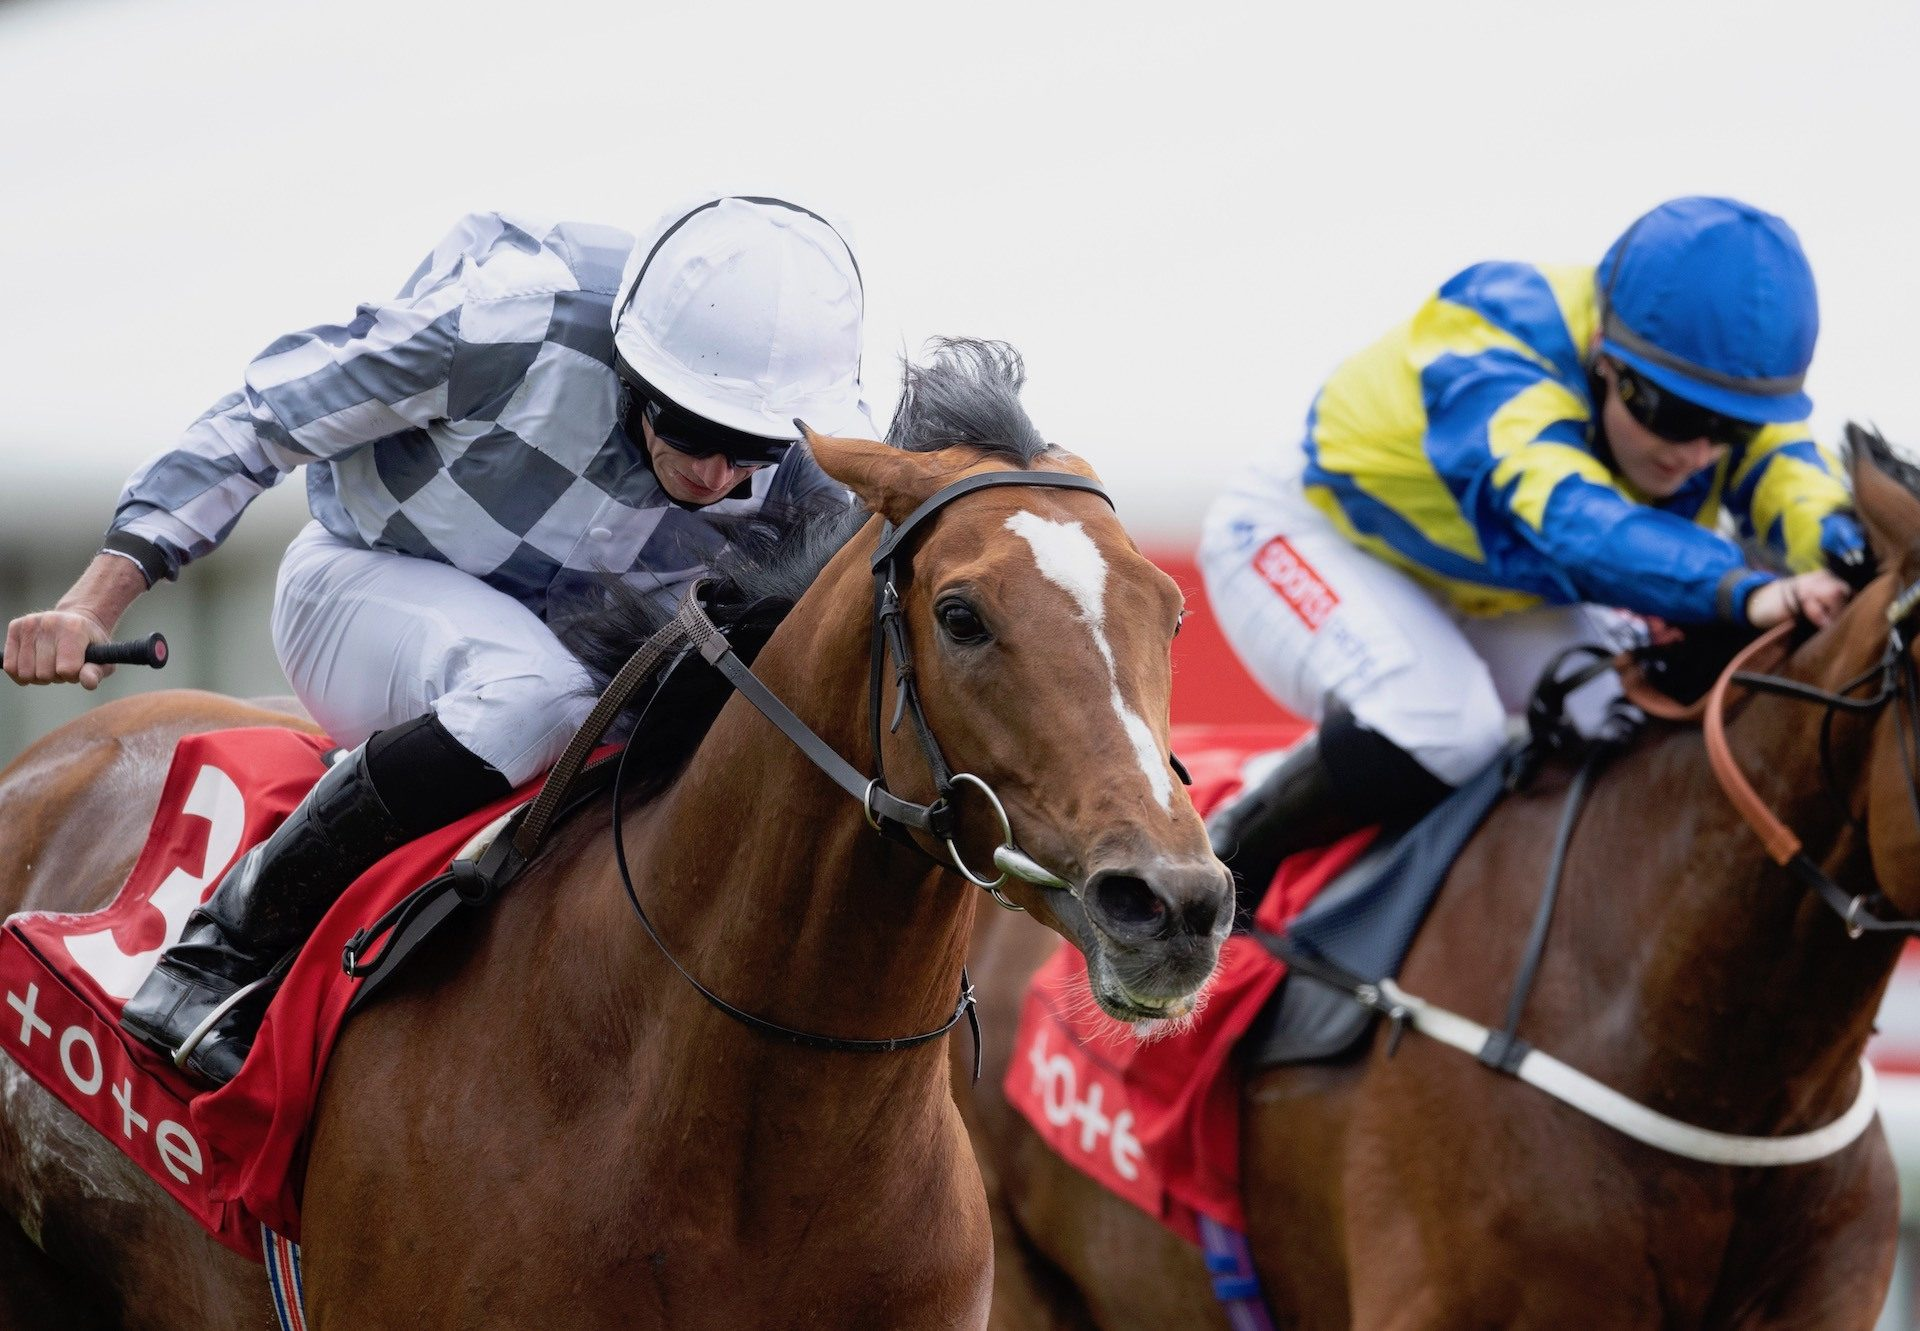 Invitation Only (Flemensfirth) winning the G3 Total Event Rental Novice Chase at Punchestown